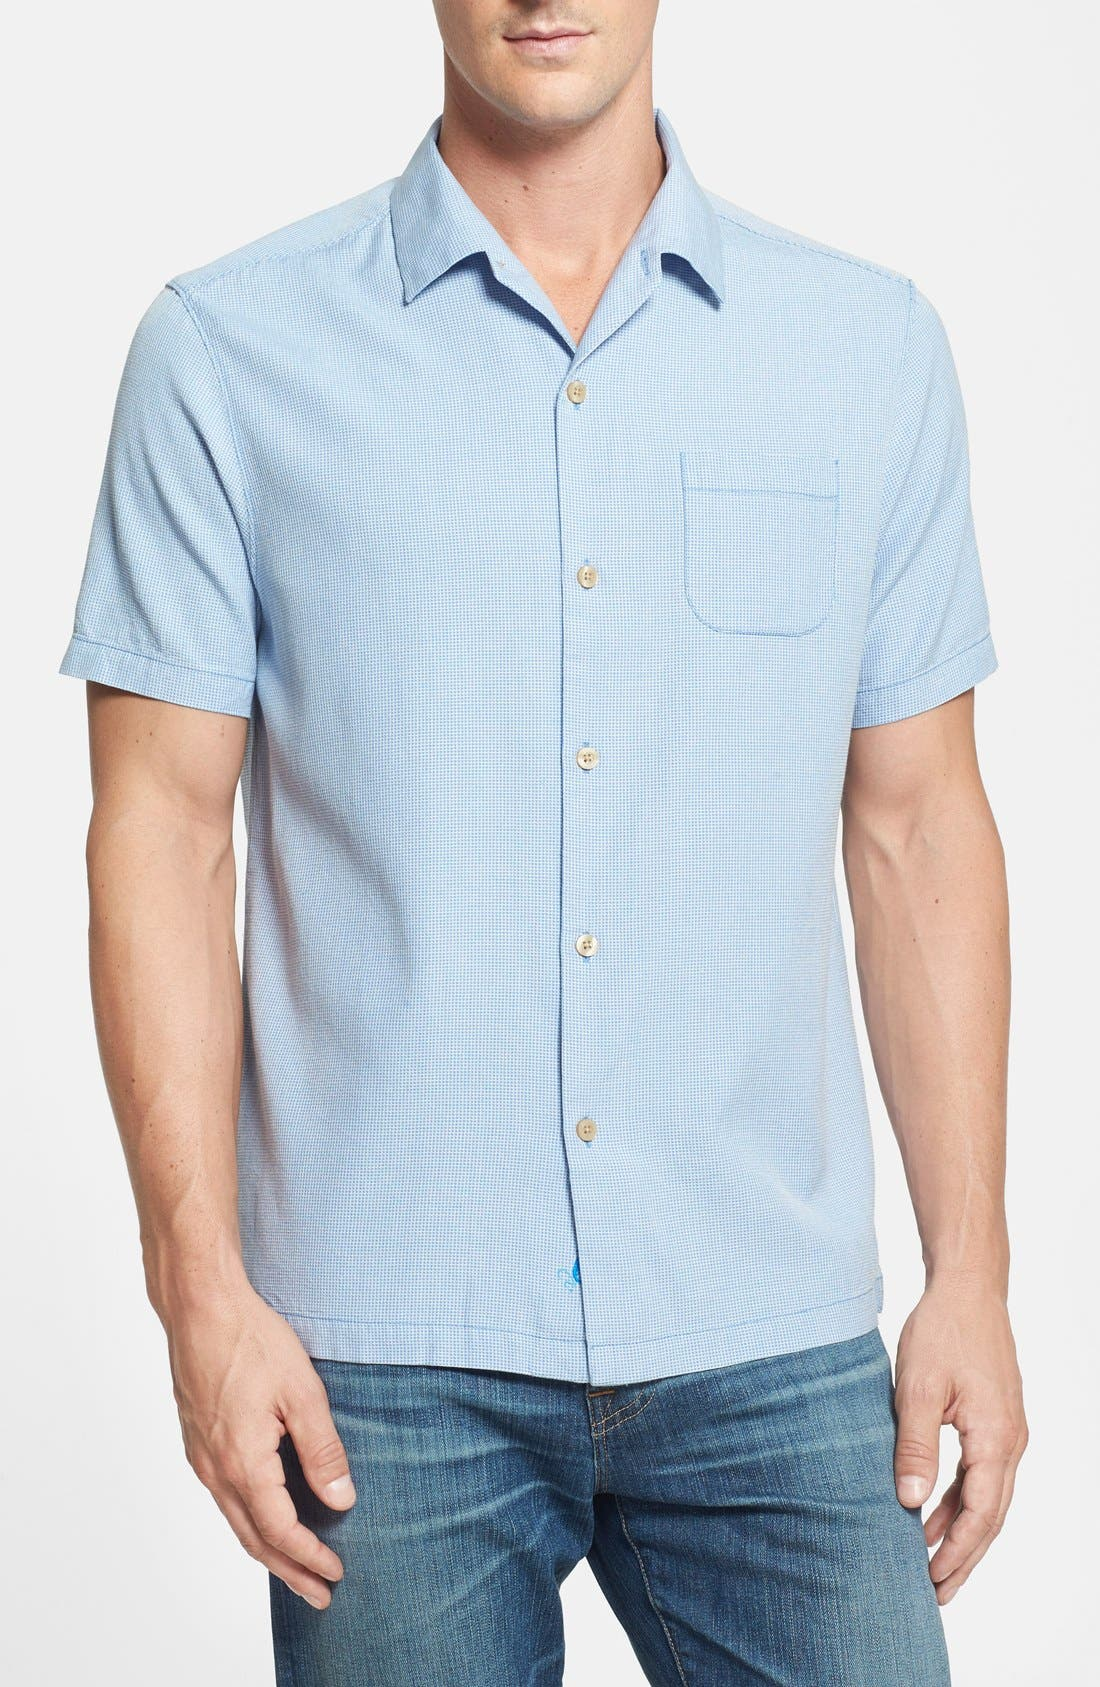 Main Image - Tommy Bahama 'Pacific Square' Island Modern Fit Silk & Cotton Campshirt